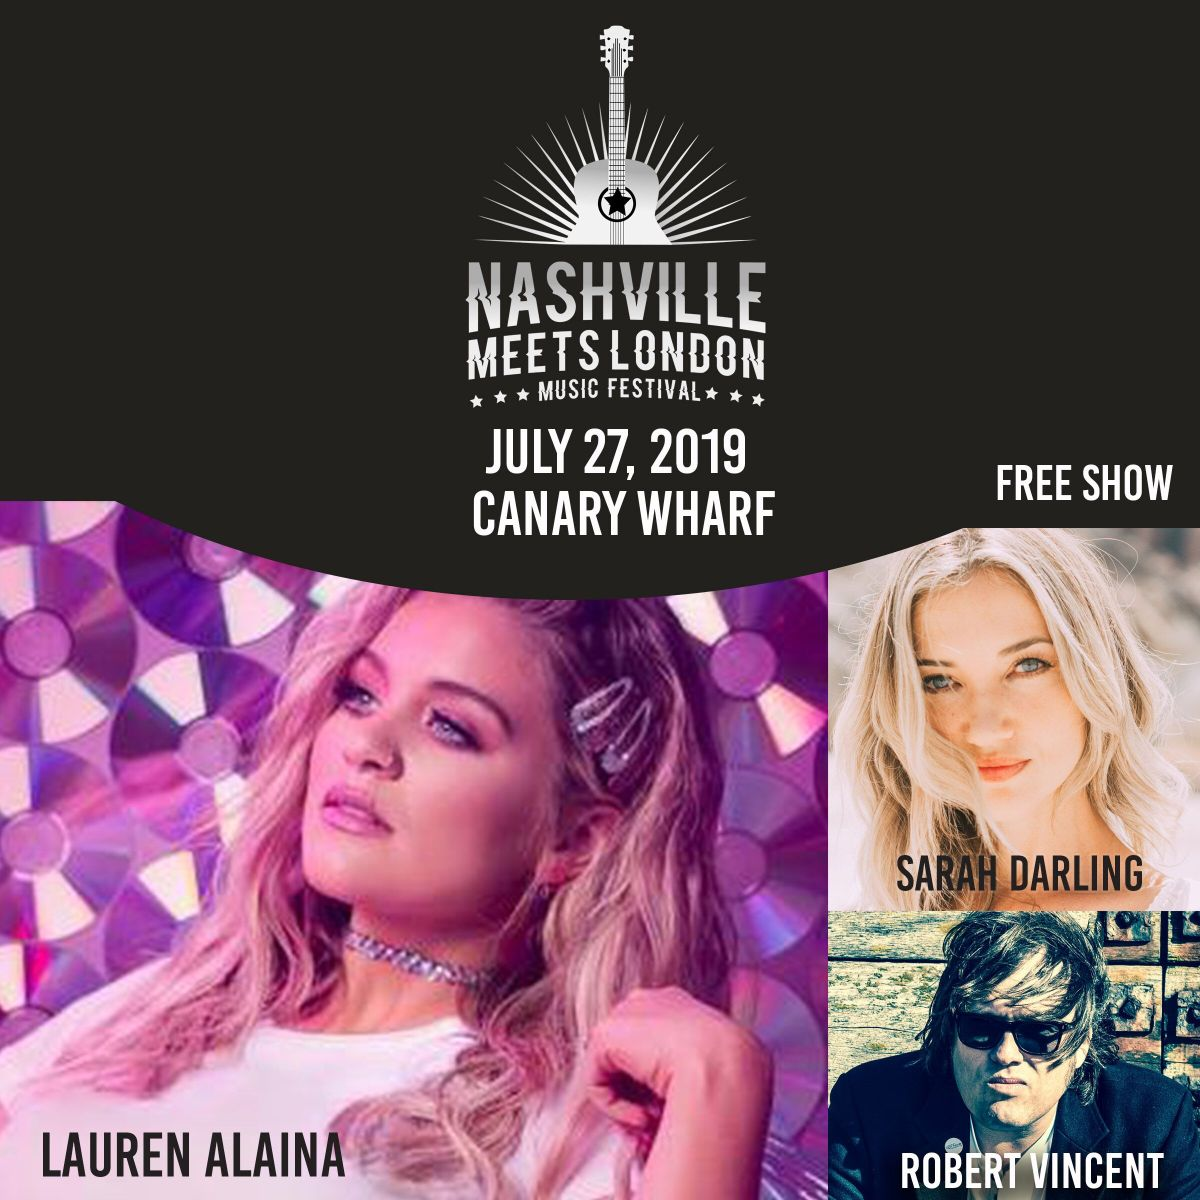 Lauren Alaina, Sarah Darling, and Robert Vincent To Perform at Nashville Meets London in Canary Wharf